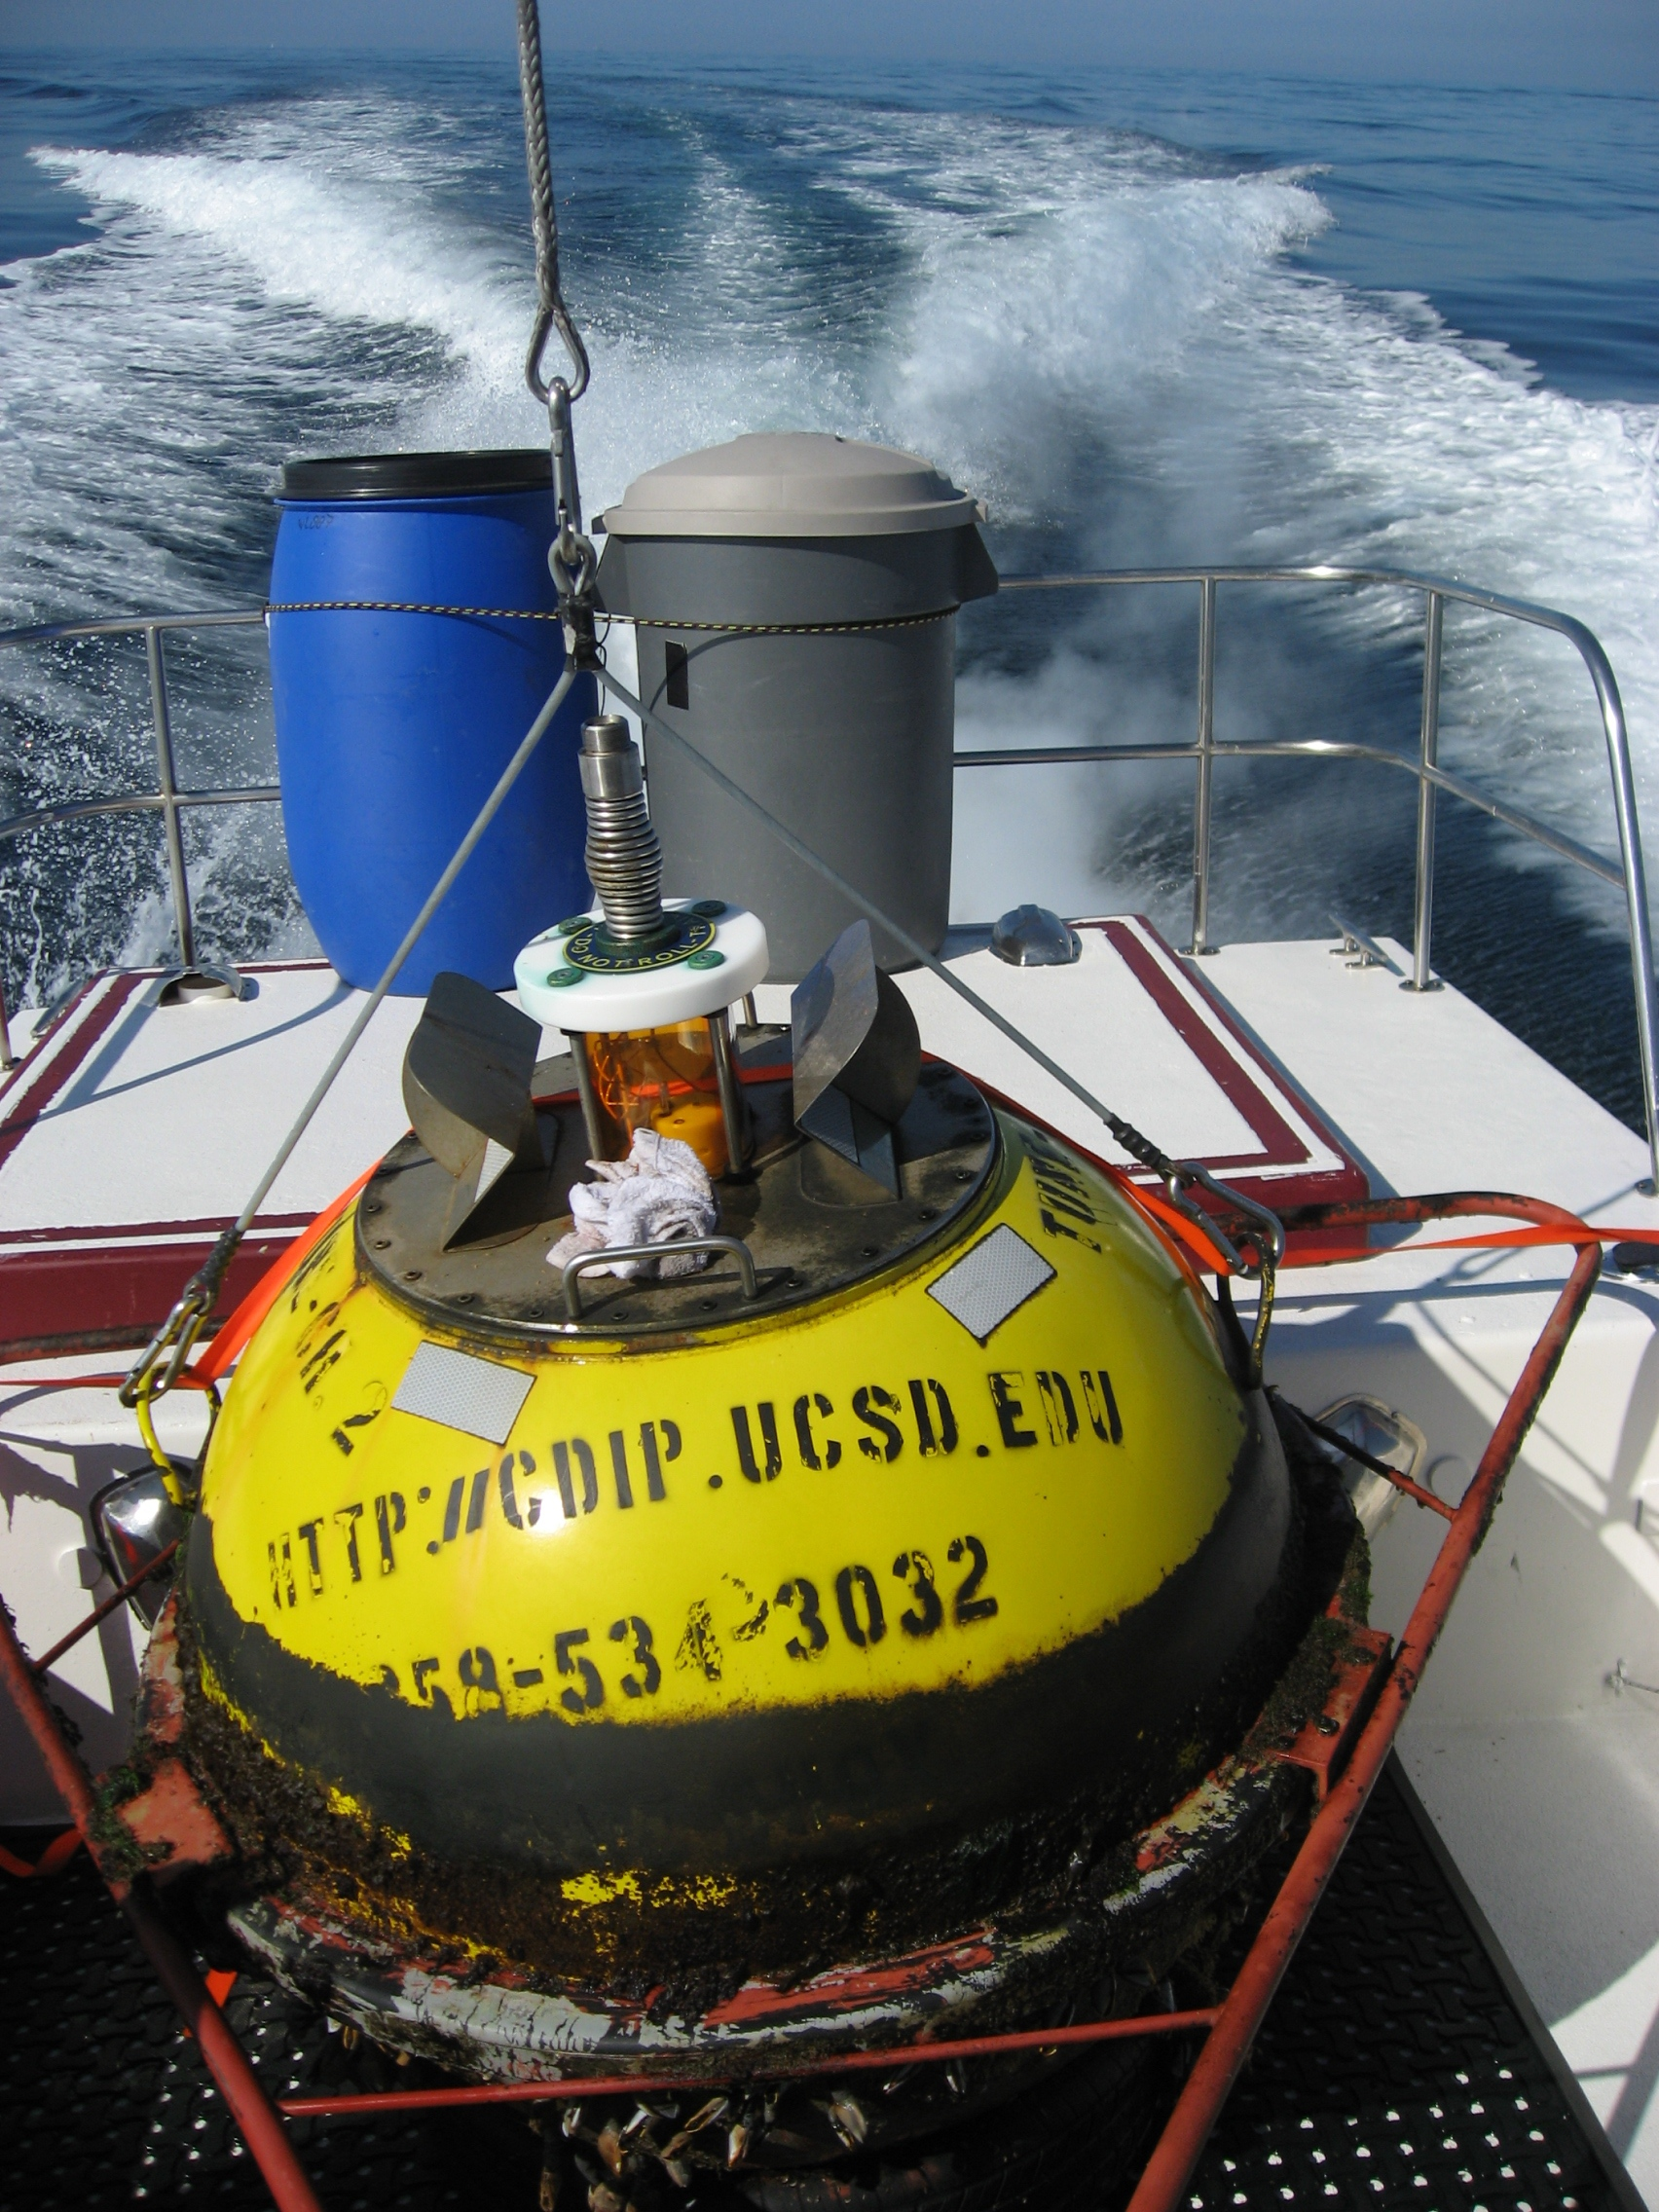 Old buoy aboard SeaDipper after successful swap